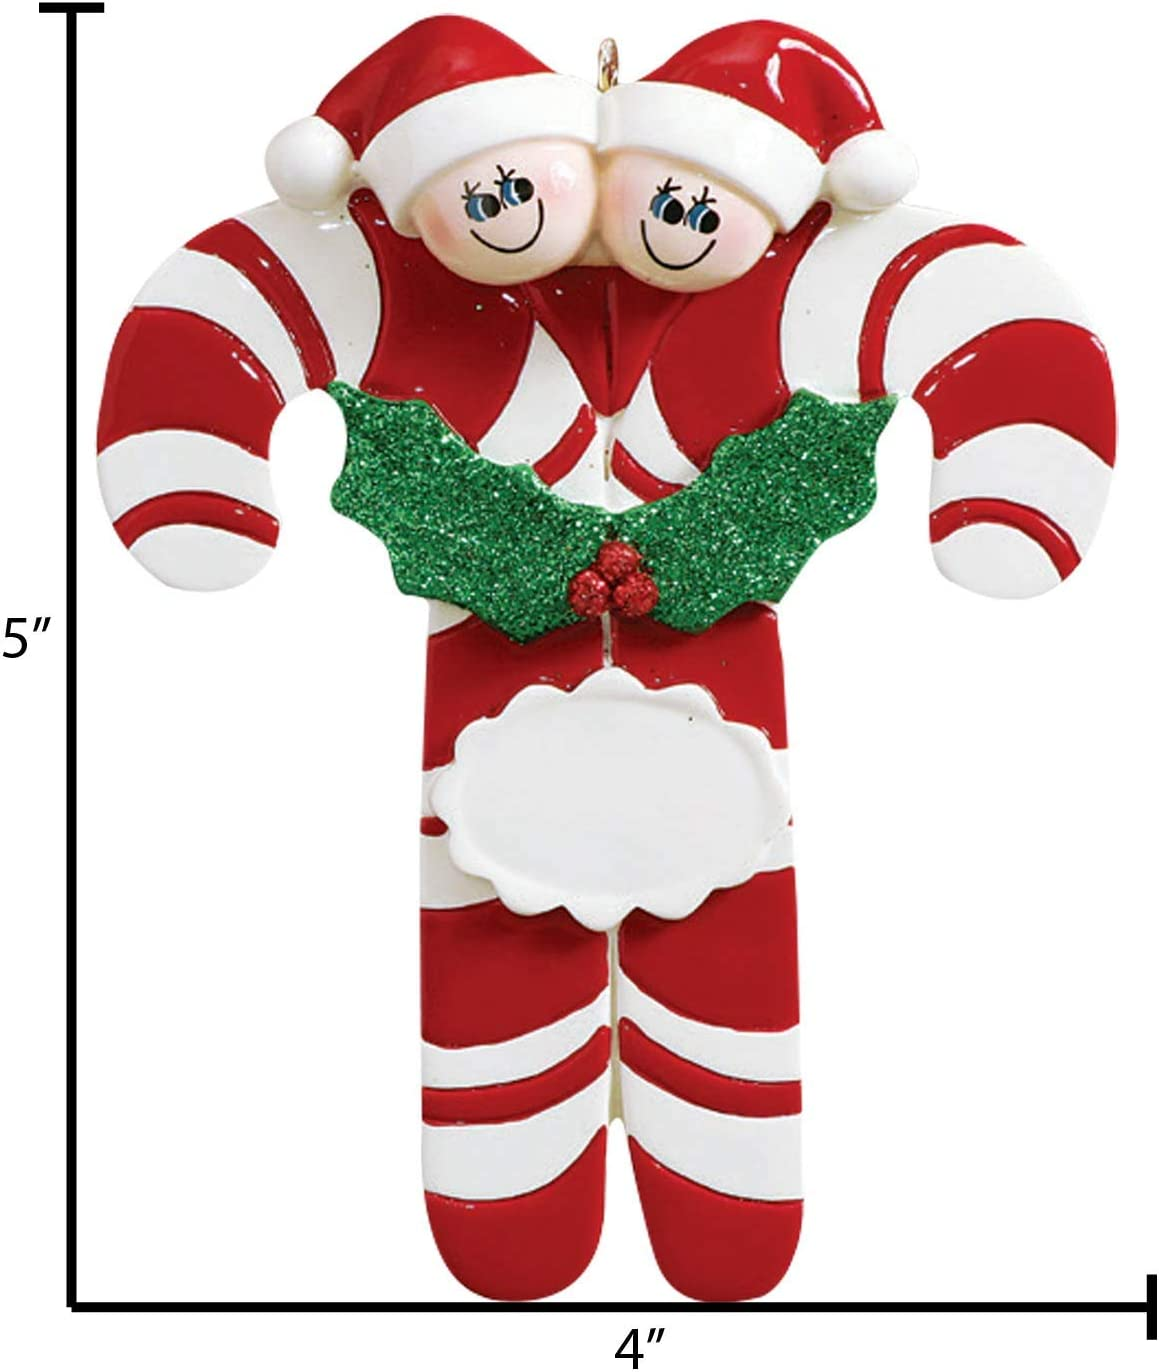 New CANDY CANE STRIPED BALL Christmas Tree Ornaments Set of 4 PEPPERMINT GLITTER